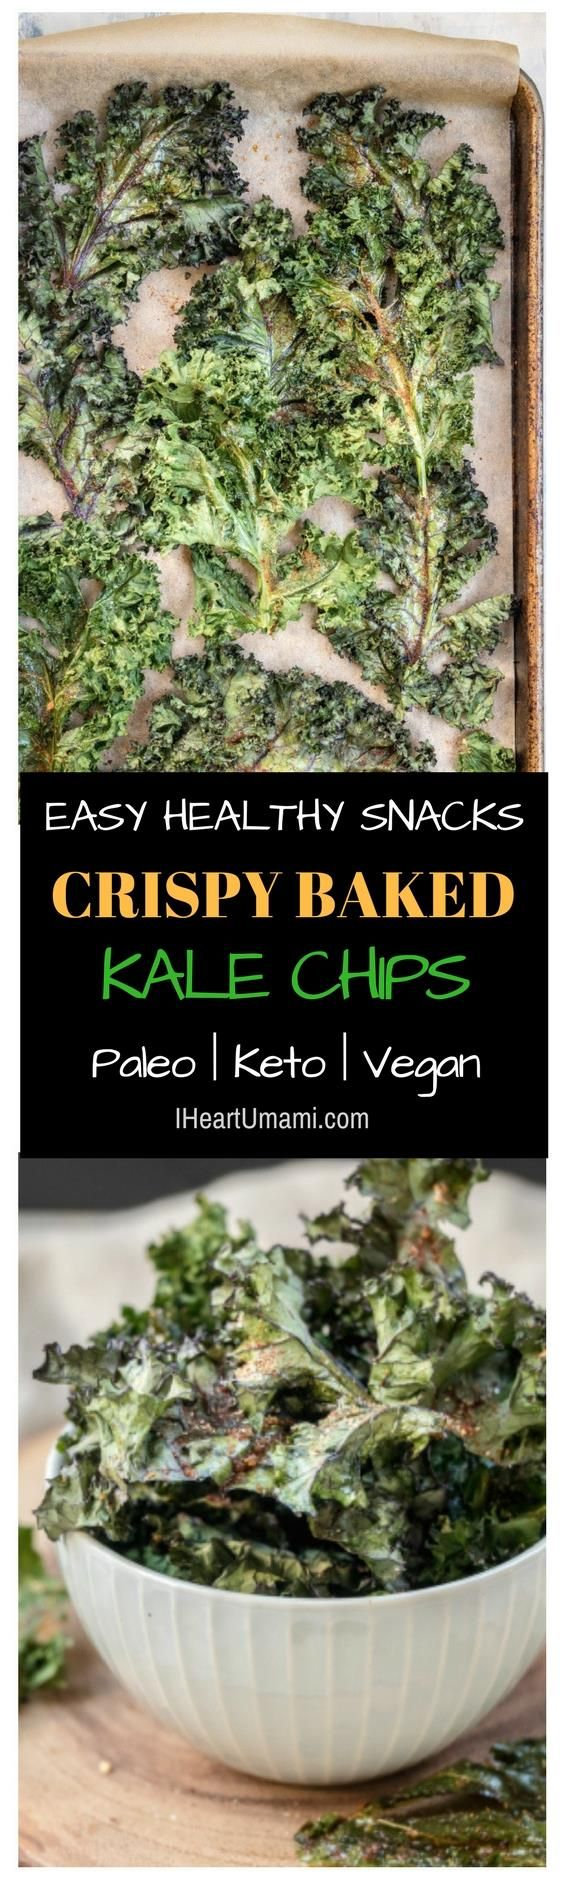 Crispy Baked Kale Chips recipe that's easy, quick, and perfect healthy snacks. Enjoy them between meals or add to meal bowls for extra crispy deliciousness. Keto Whole30 Vegan and Paleo friendly from IHeartUmami.com #Kalechips #Kale #Vegan #healthysnacks #snacks #Paleosnacks via @iheartumami